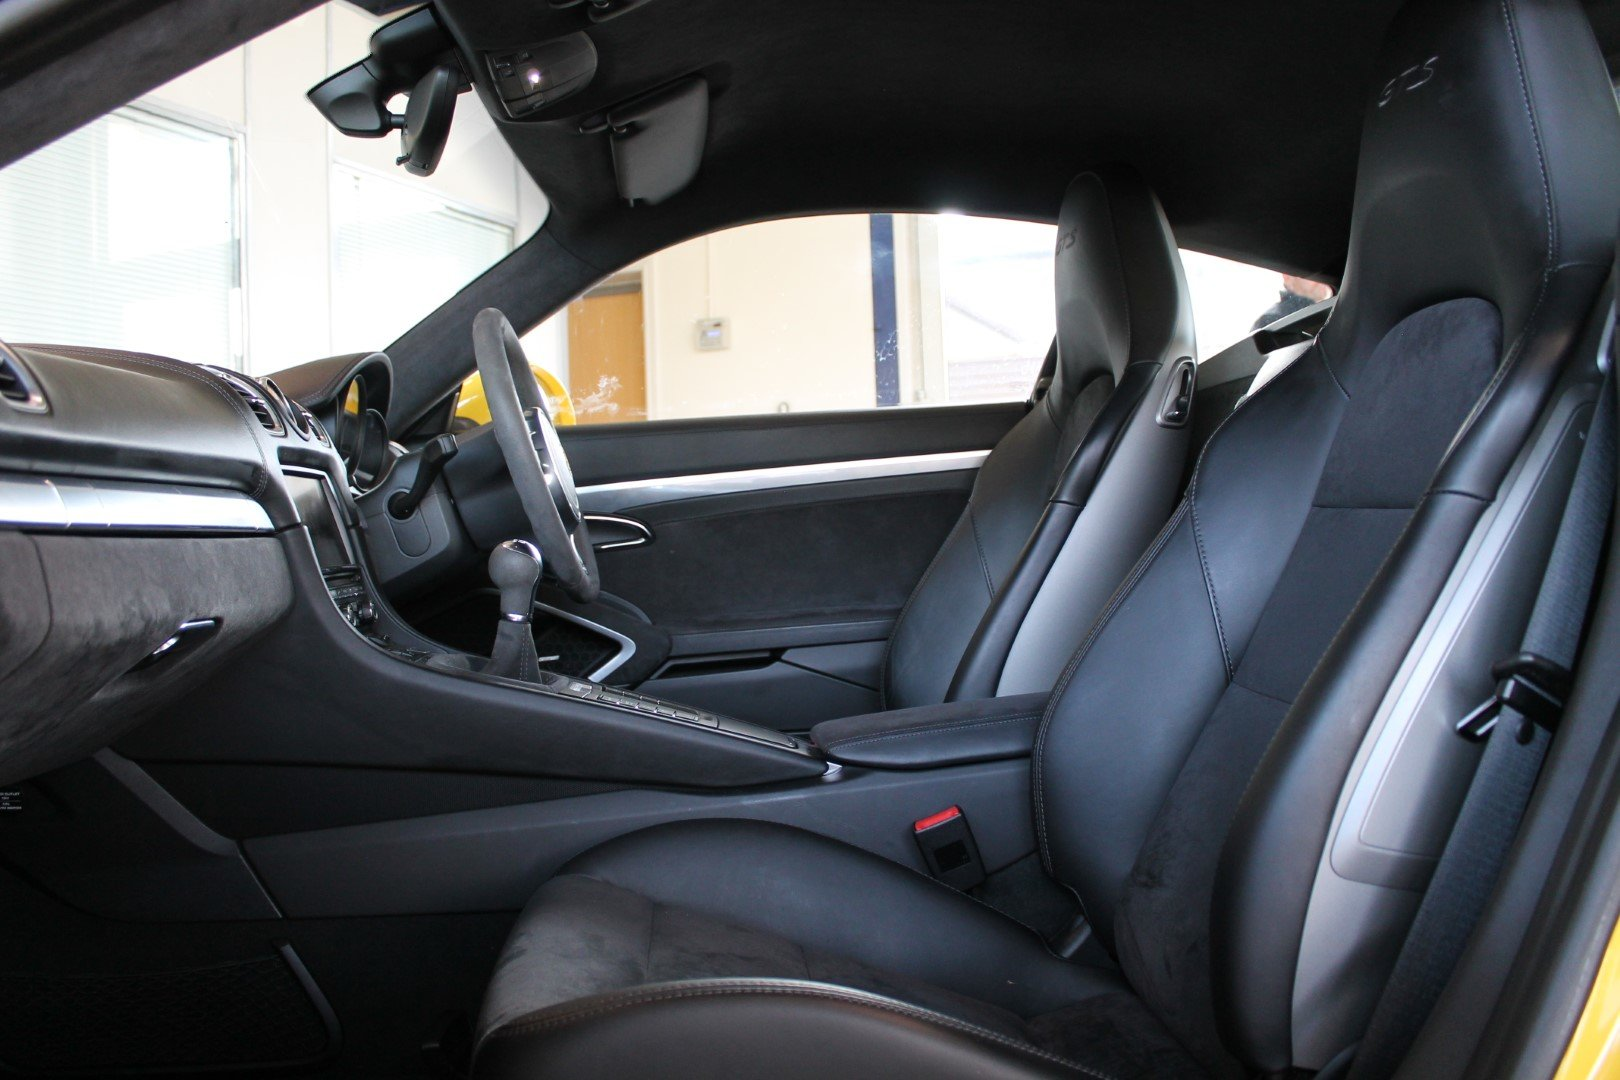 2016/16 Porsche Cayman (981) 3.4 GTS Manual For Sale (picture 6 of 6)